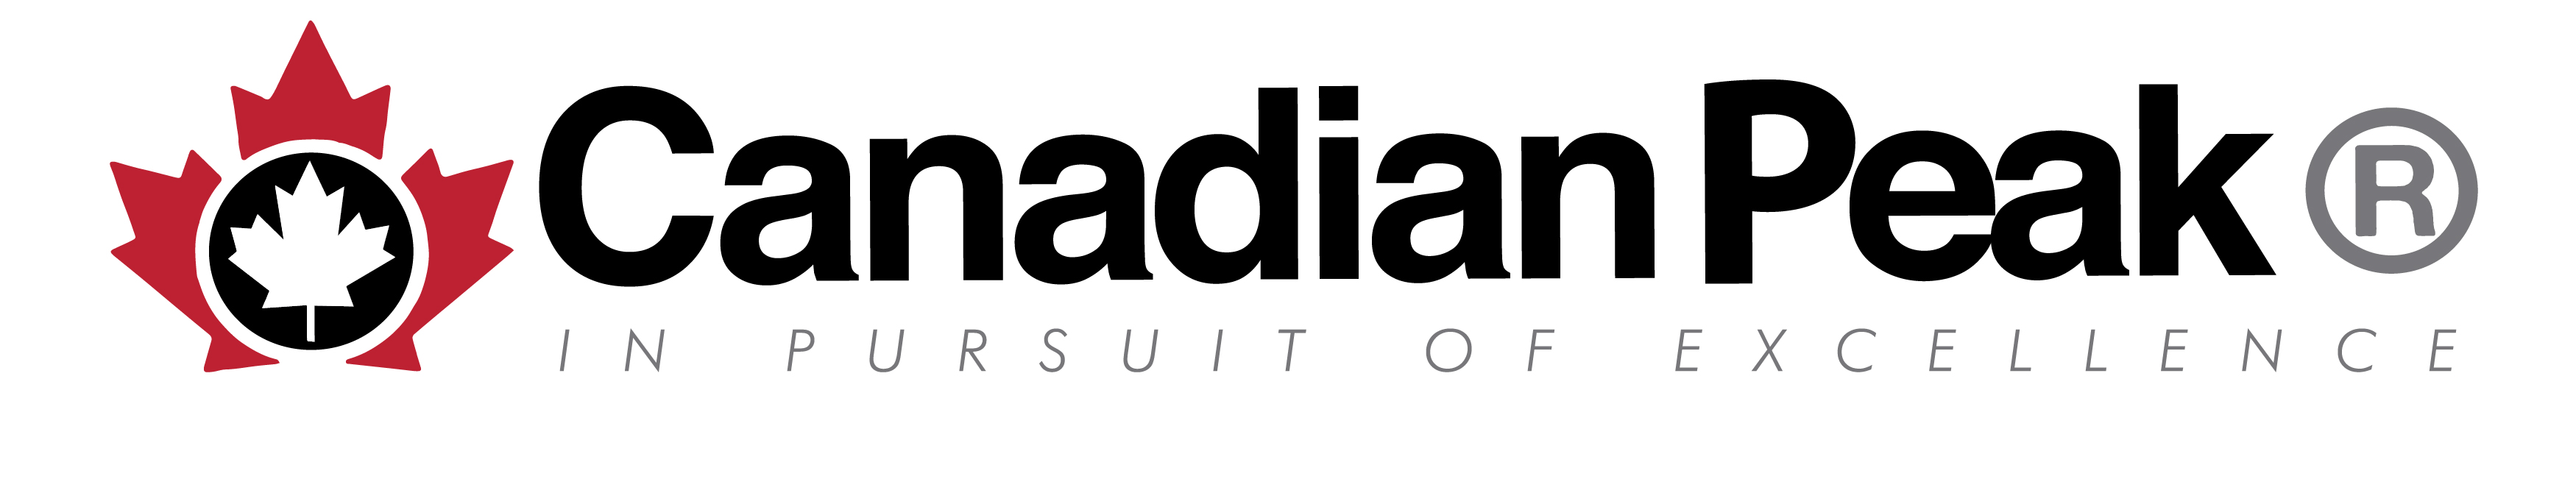 Canadian Peak Logo